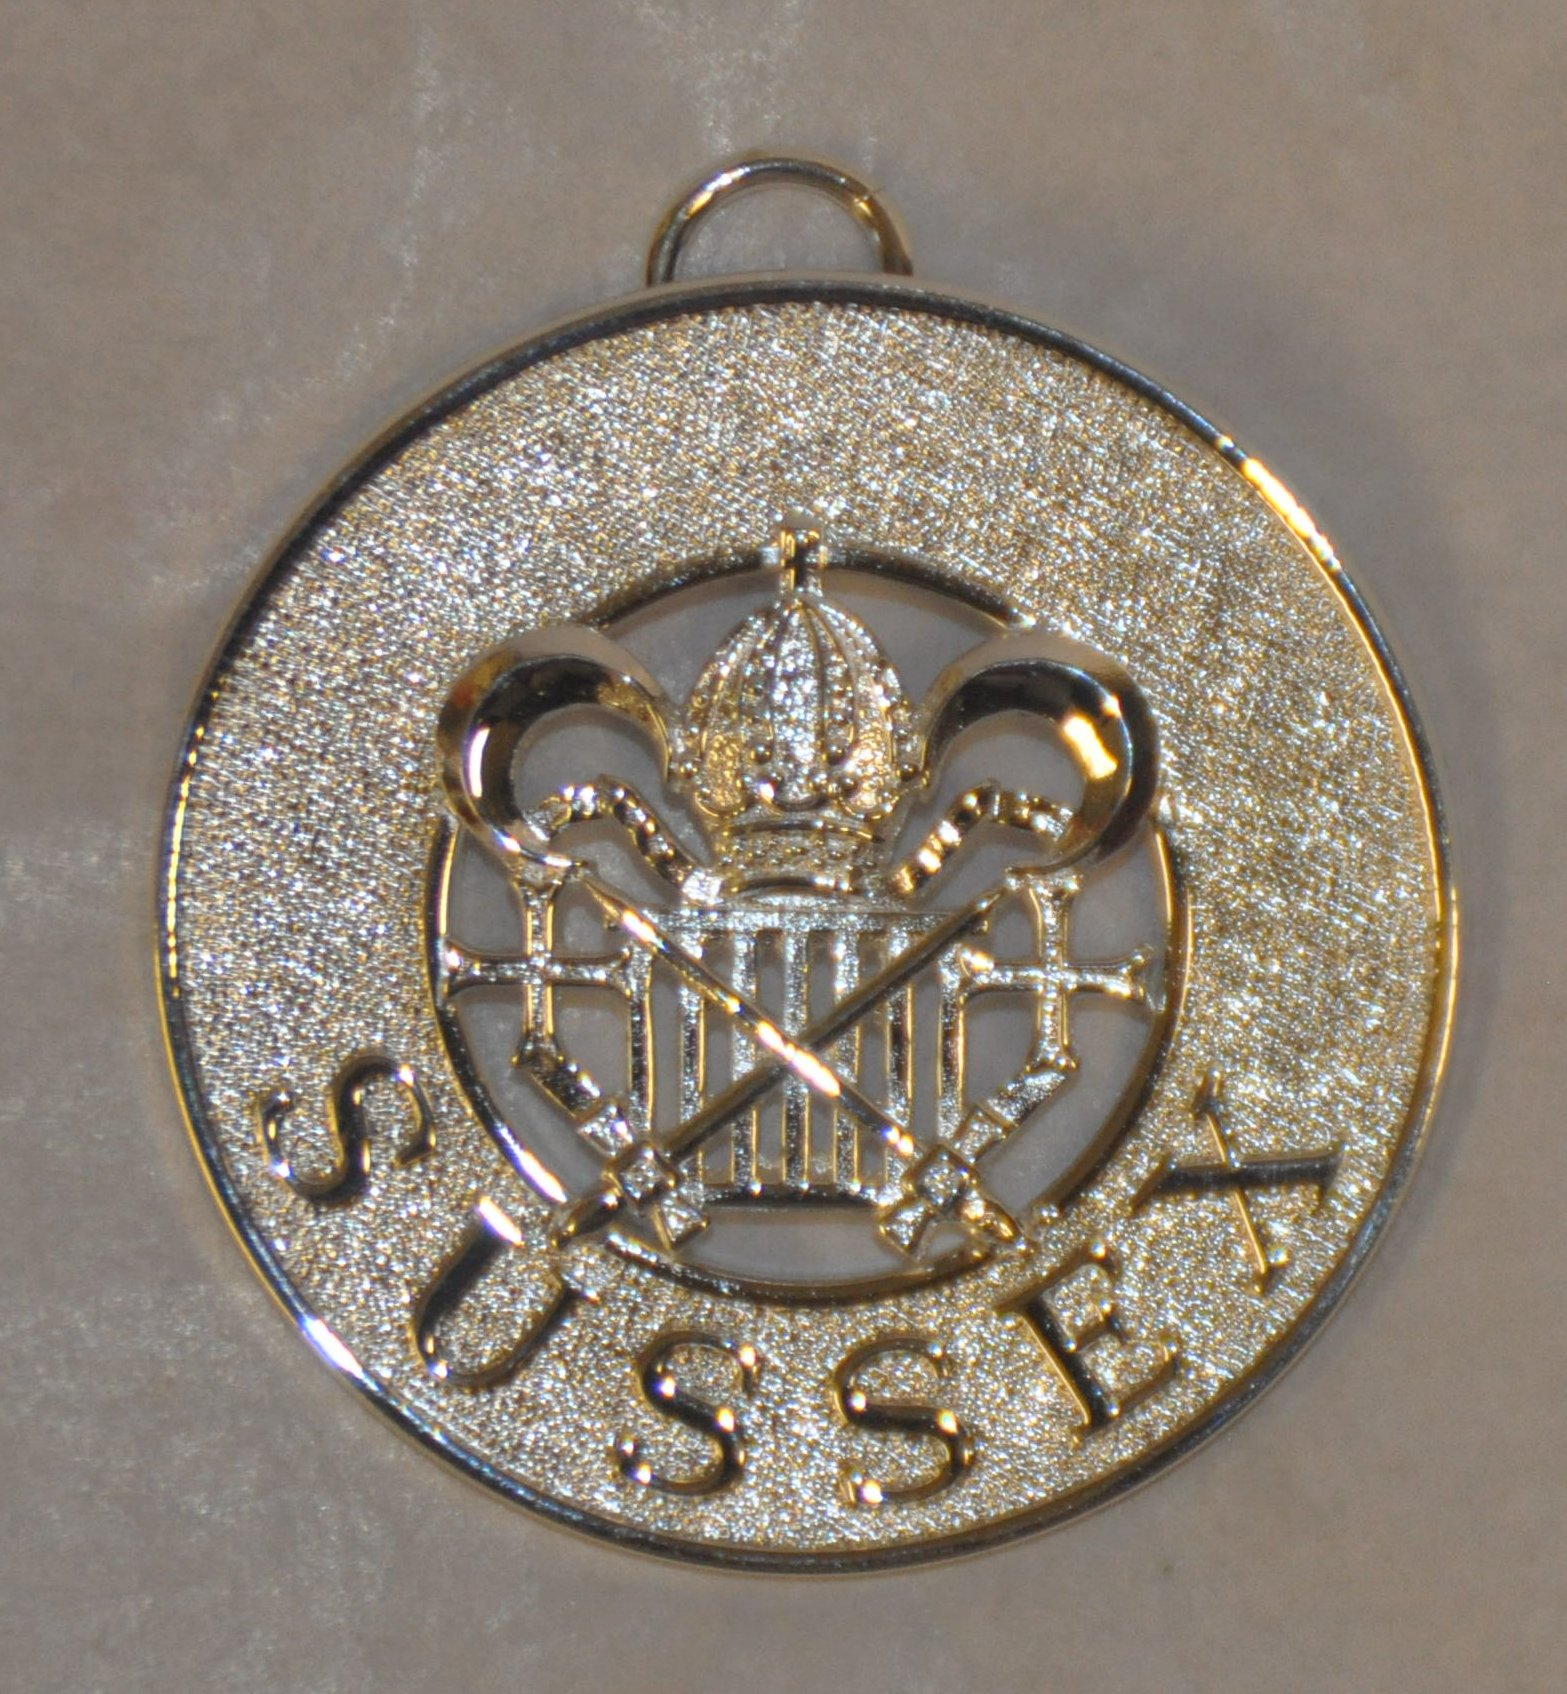 Allied Masonic Degree - District Grand Officer Collar Jewel - Past or Active